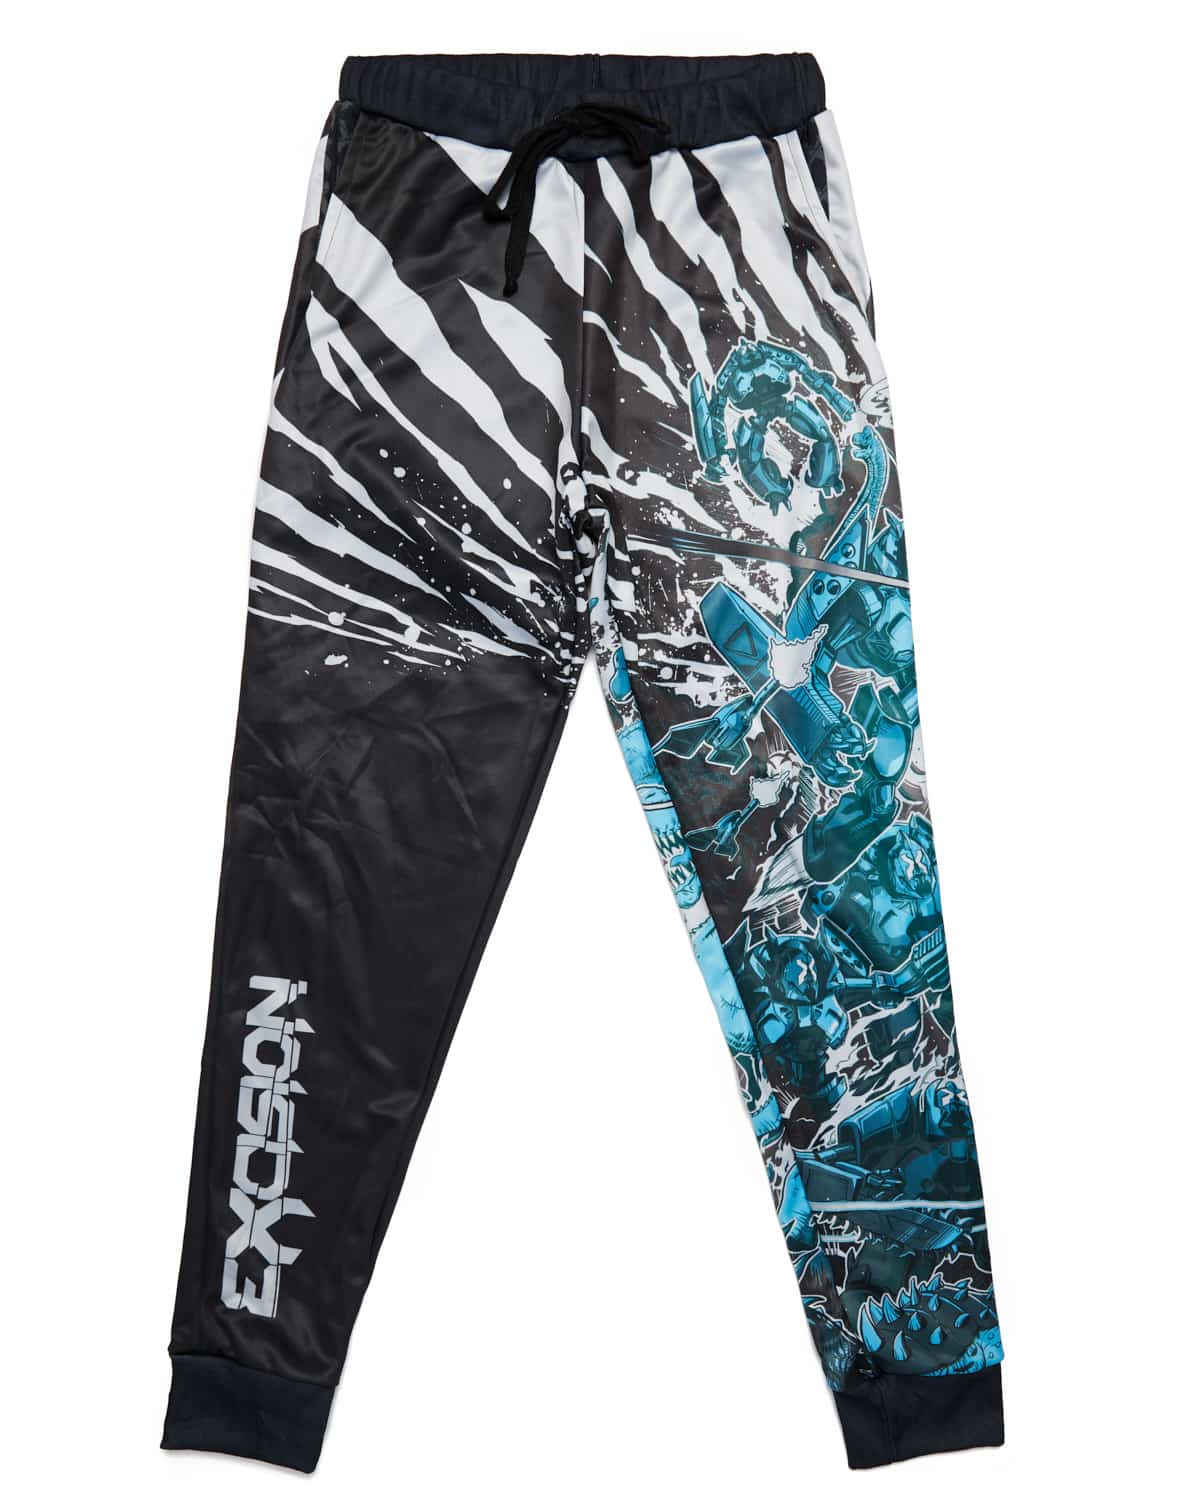 Excision 'Dino vs. Robot' Joggers - Blue